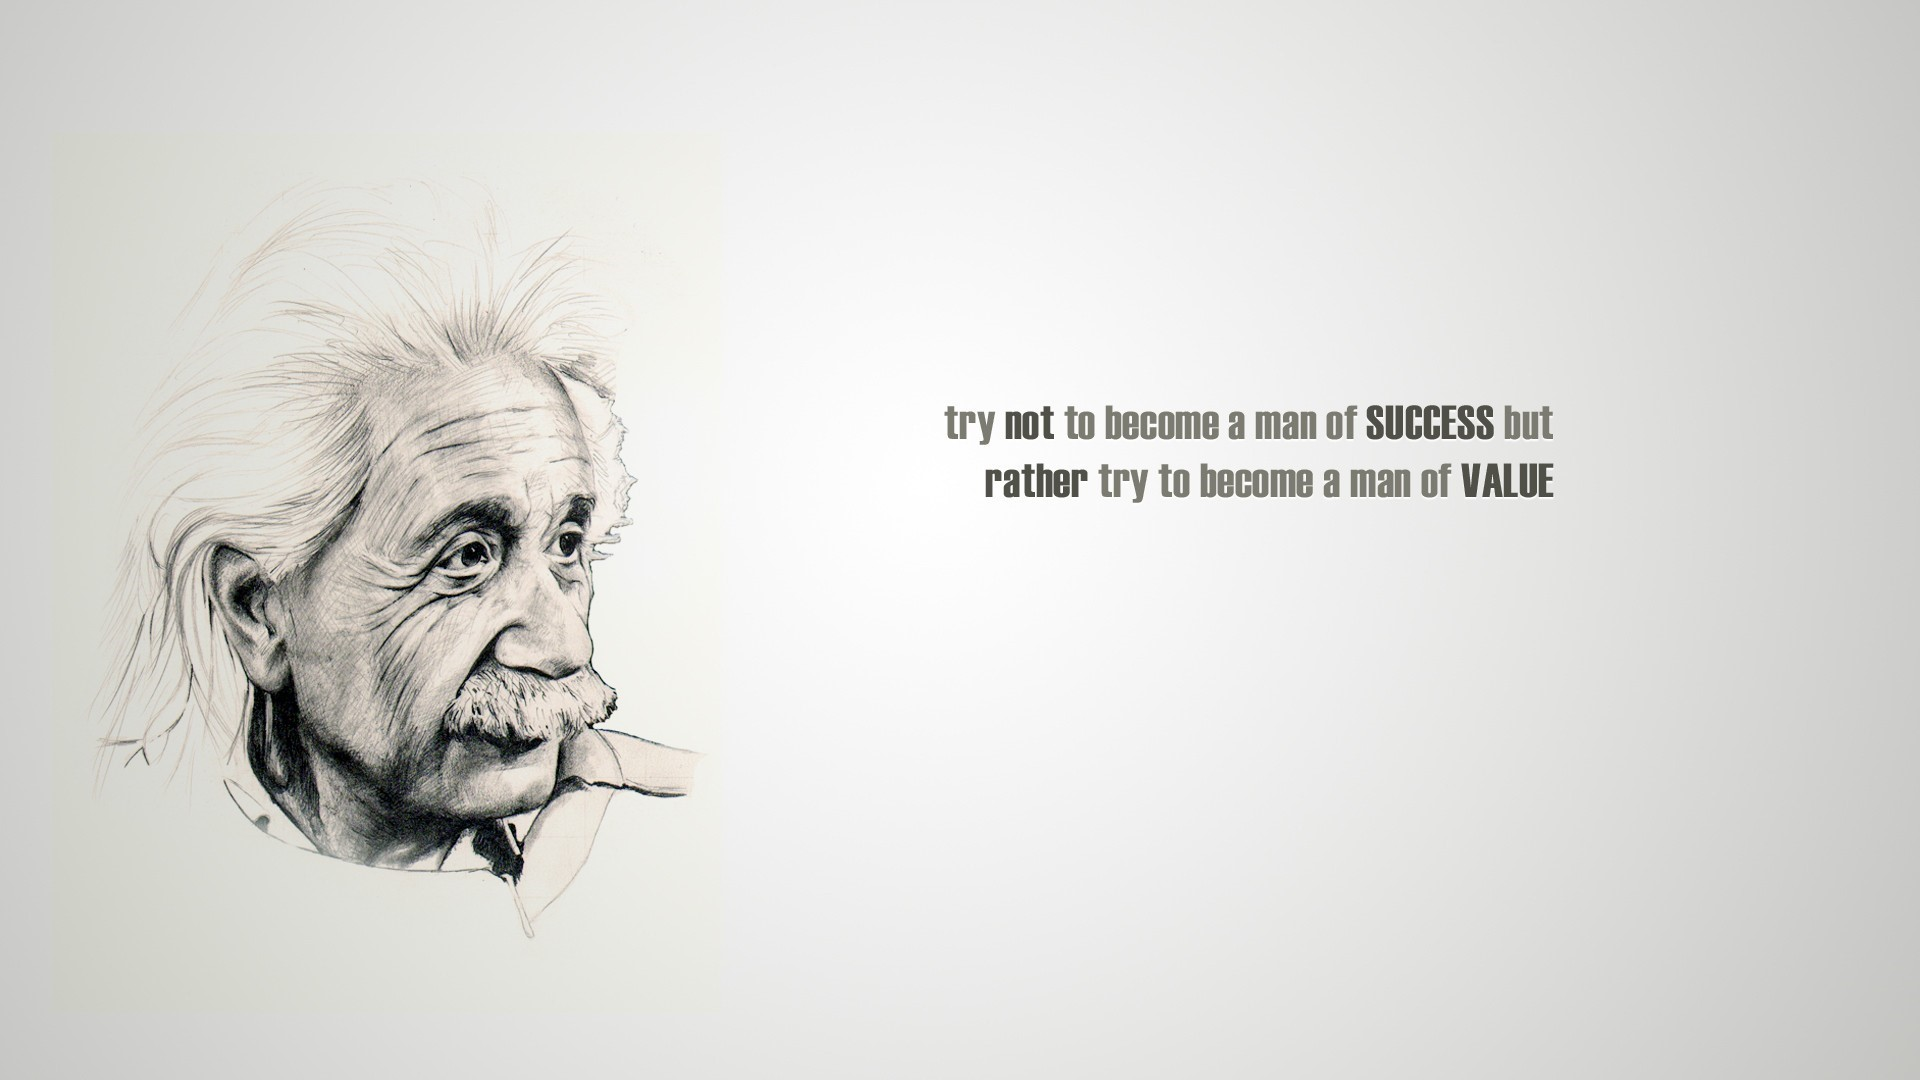 Albert Einstein Famous Quote on Success and Value HD Wallpaper 1920x1080